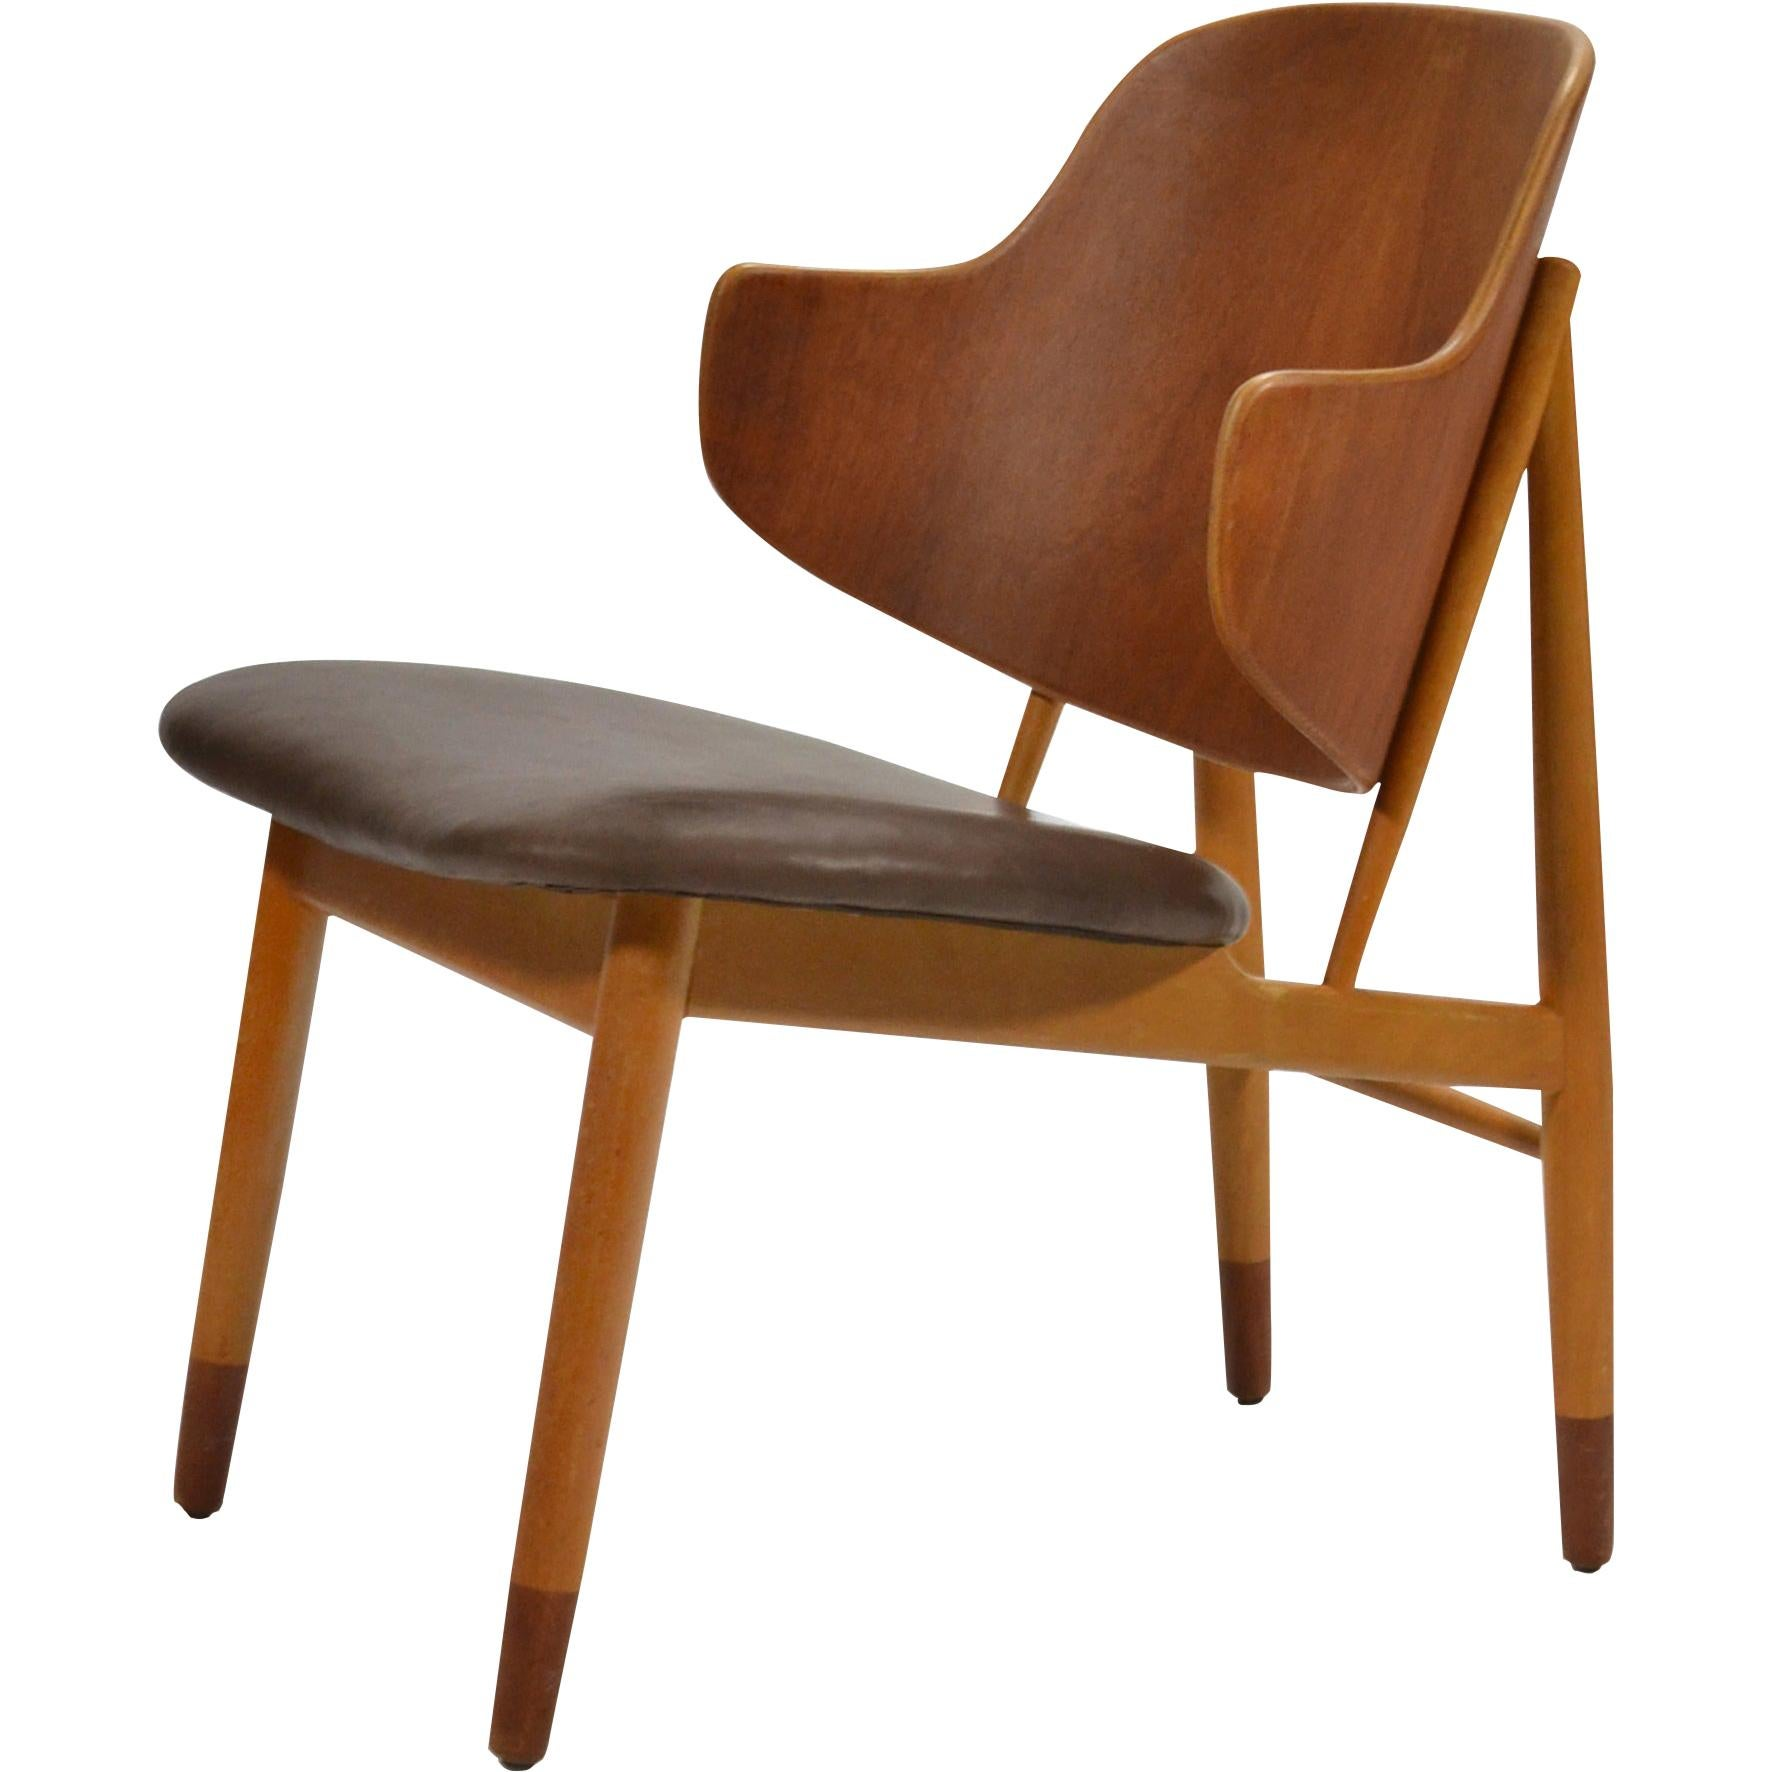 Ib Kofod-Larsen Lounge Chair in Teak and Birch